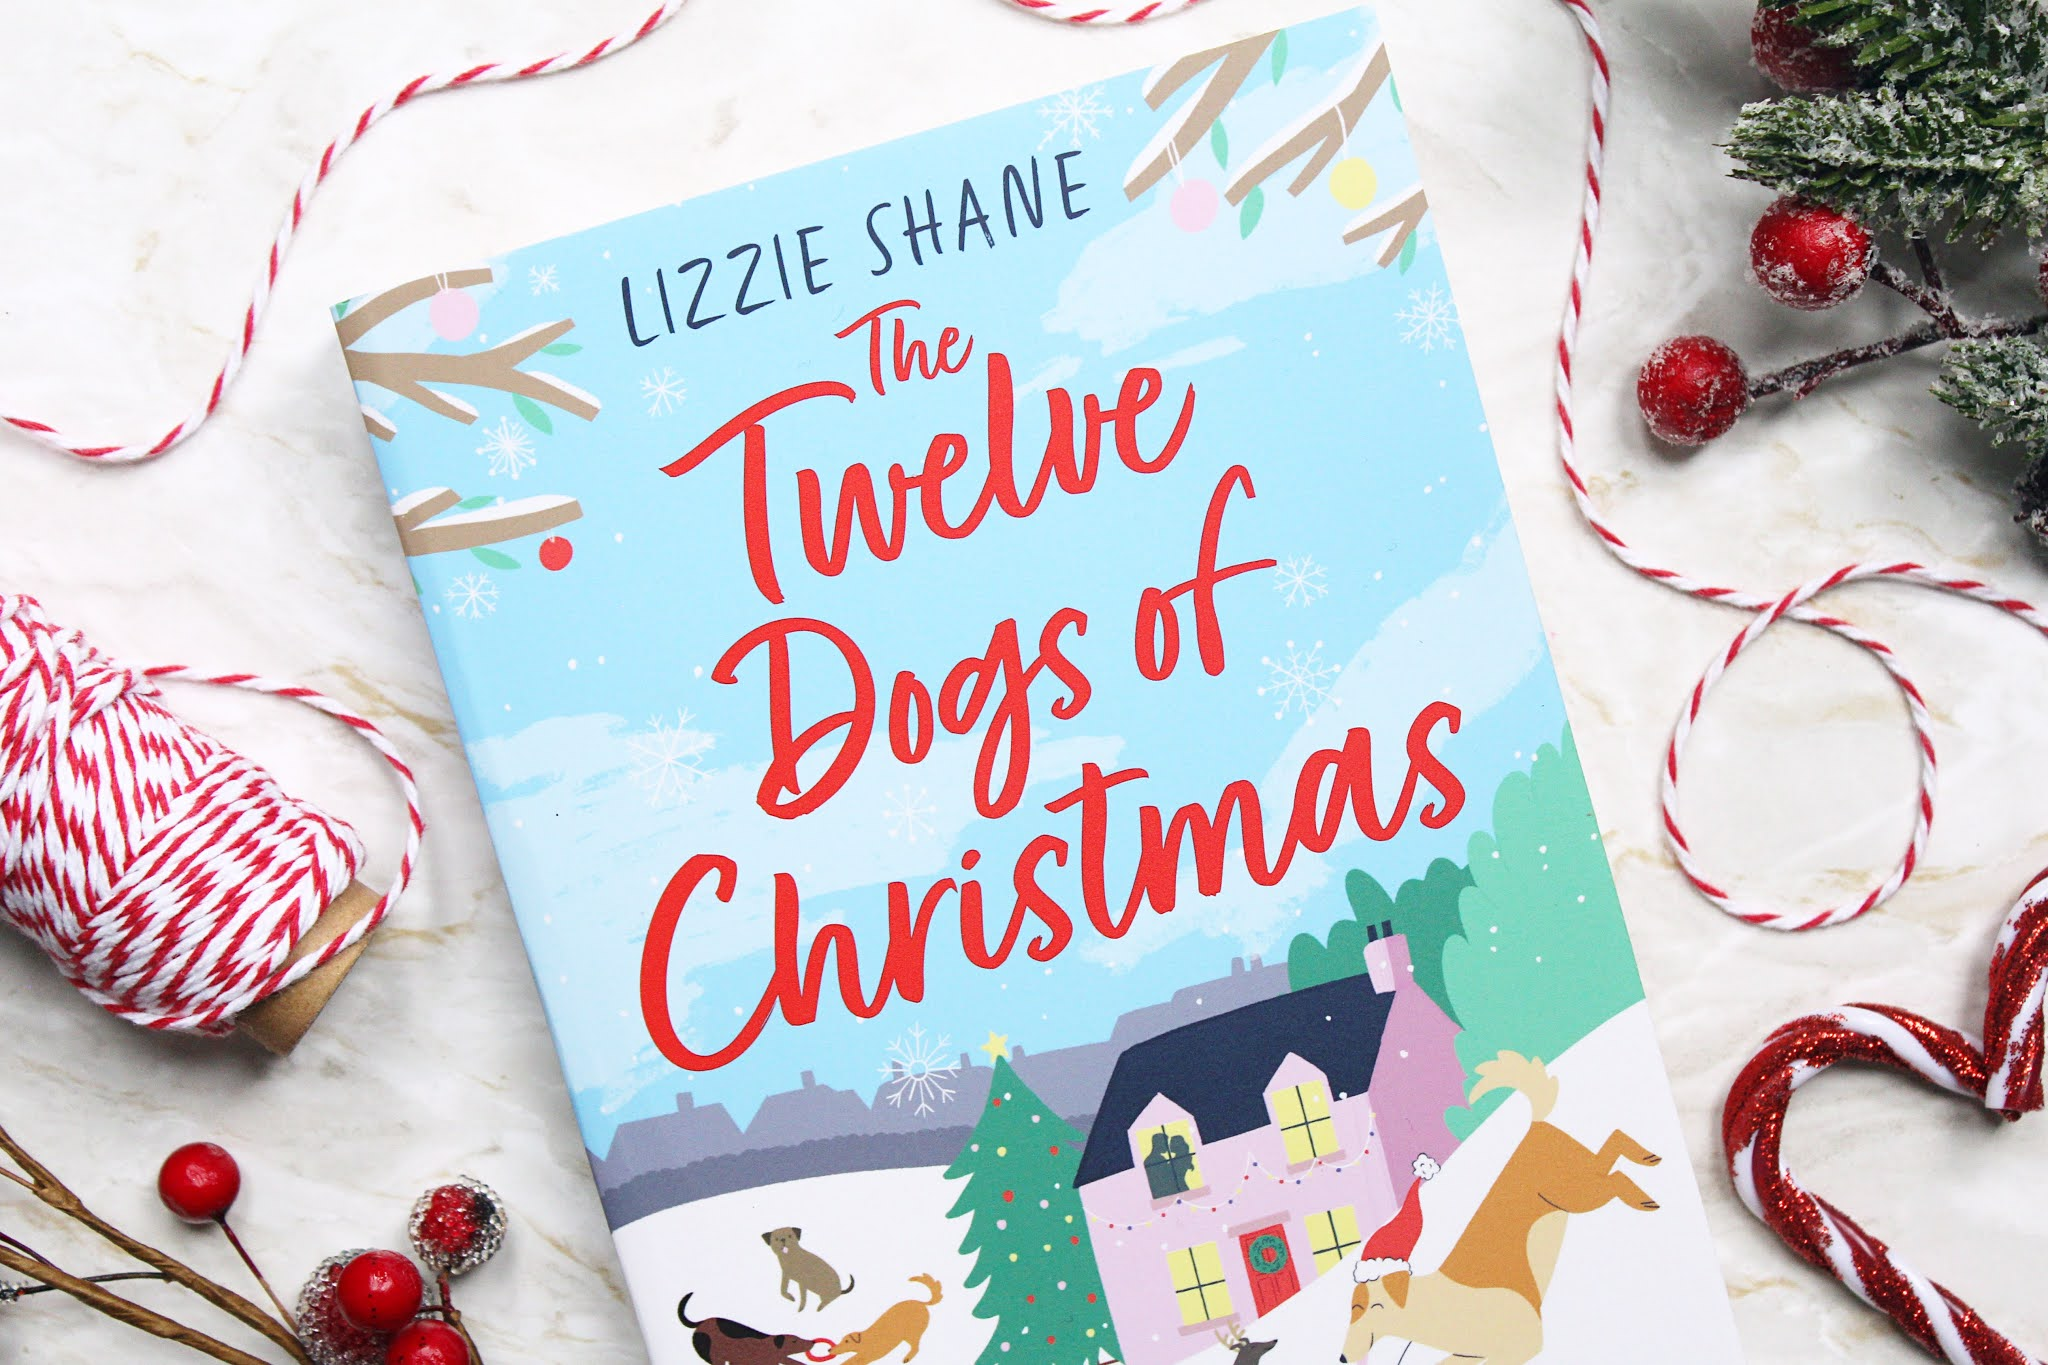 The Twelve Dogs of Christmas - Lizzie Shane | Spoiler Free Book Review